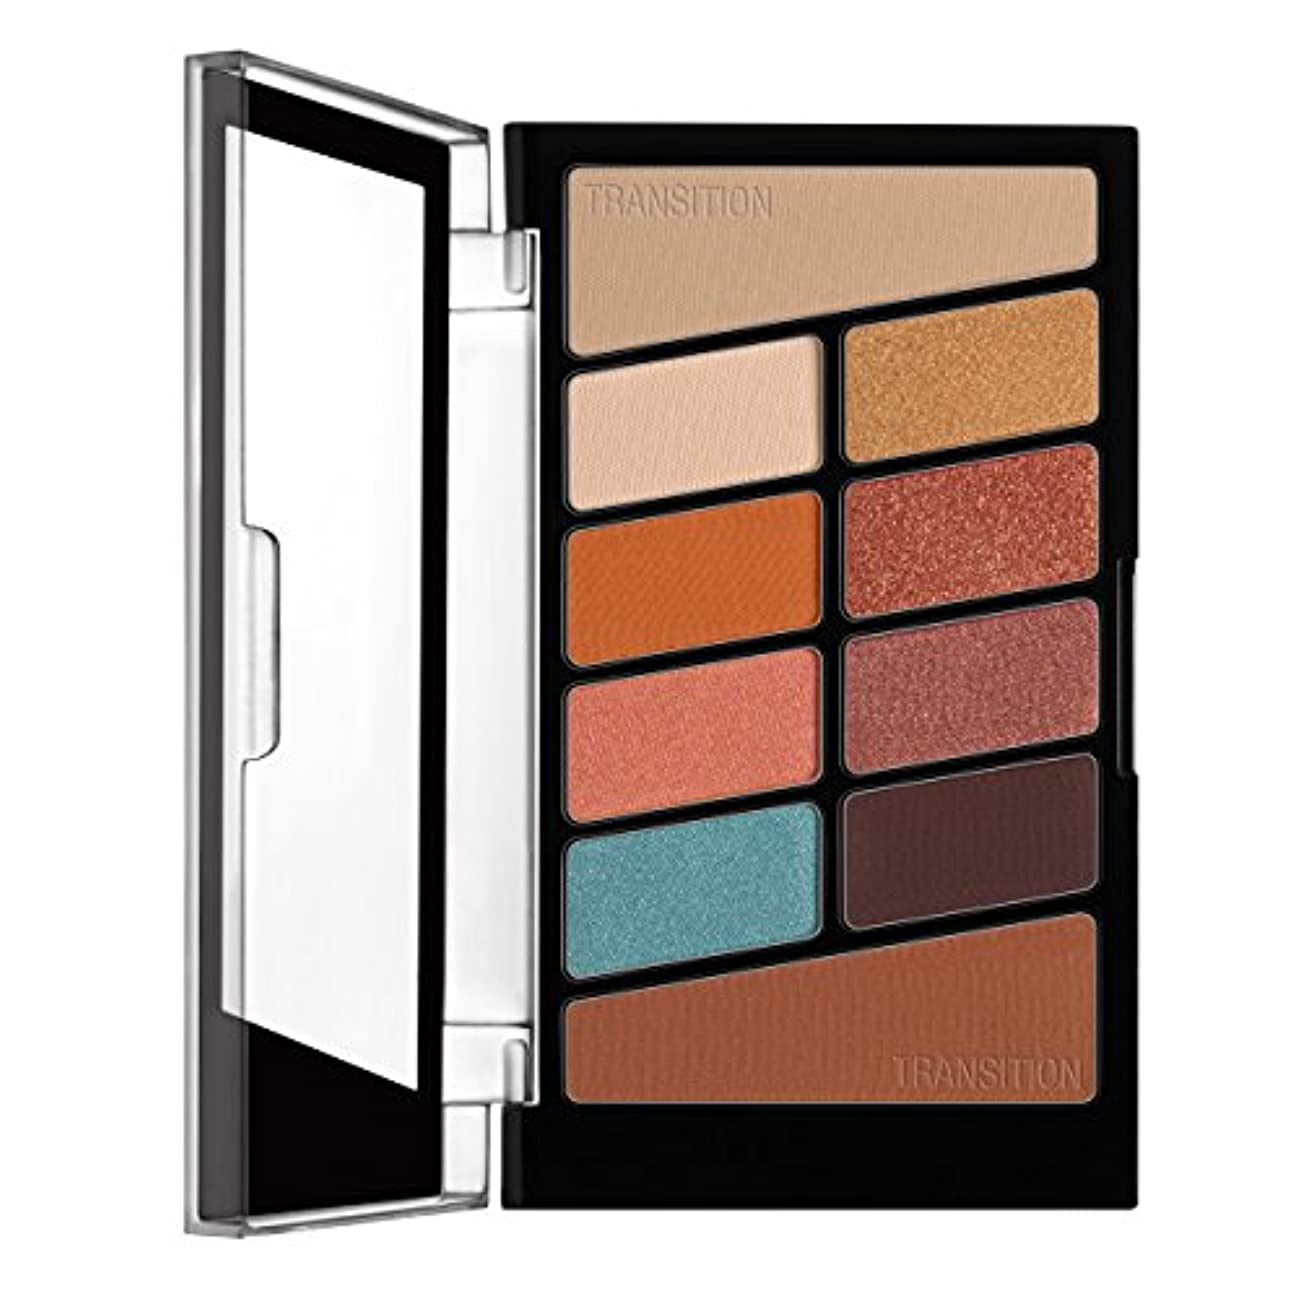 さておき慈悲深い種WET N WILD Color Icon Eyeshadow 10 Pan Palette - Not A Basic Peach (並行輸入品)